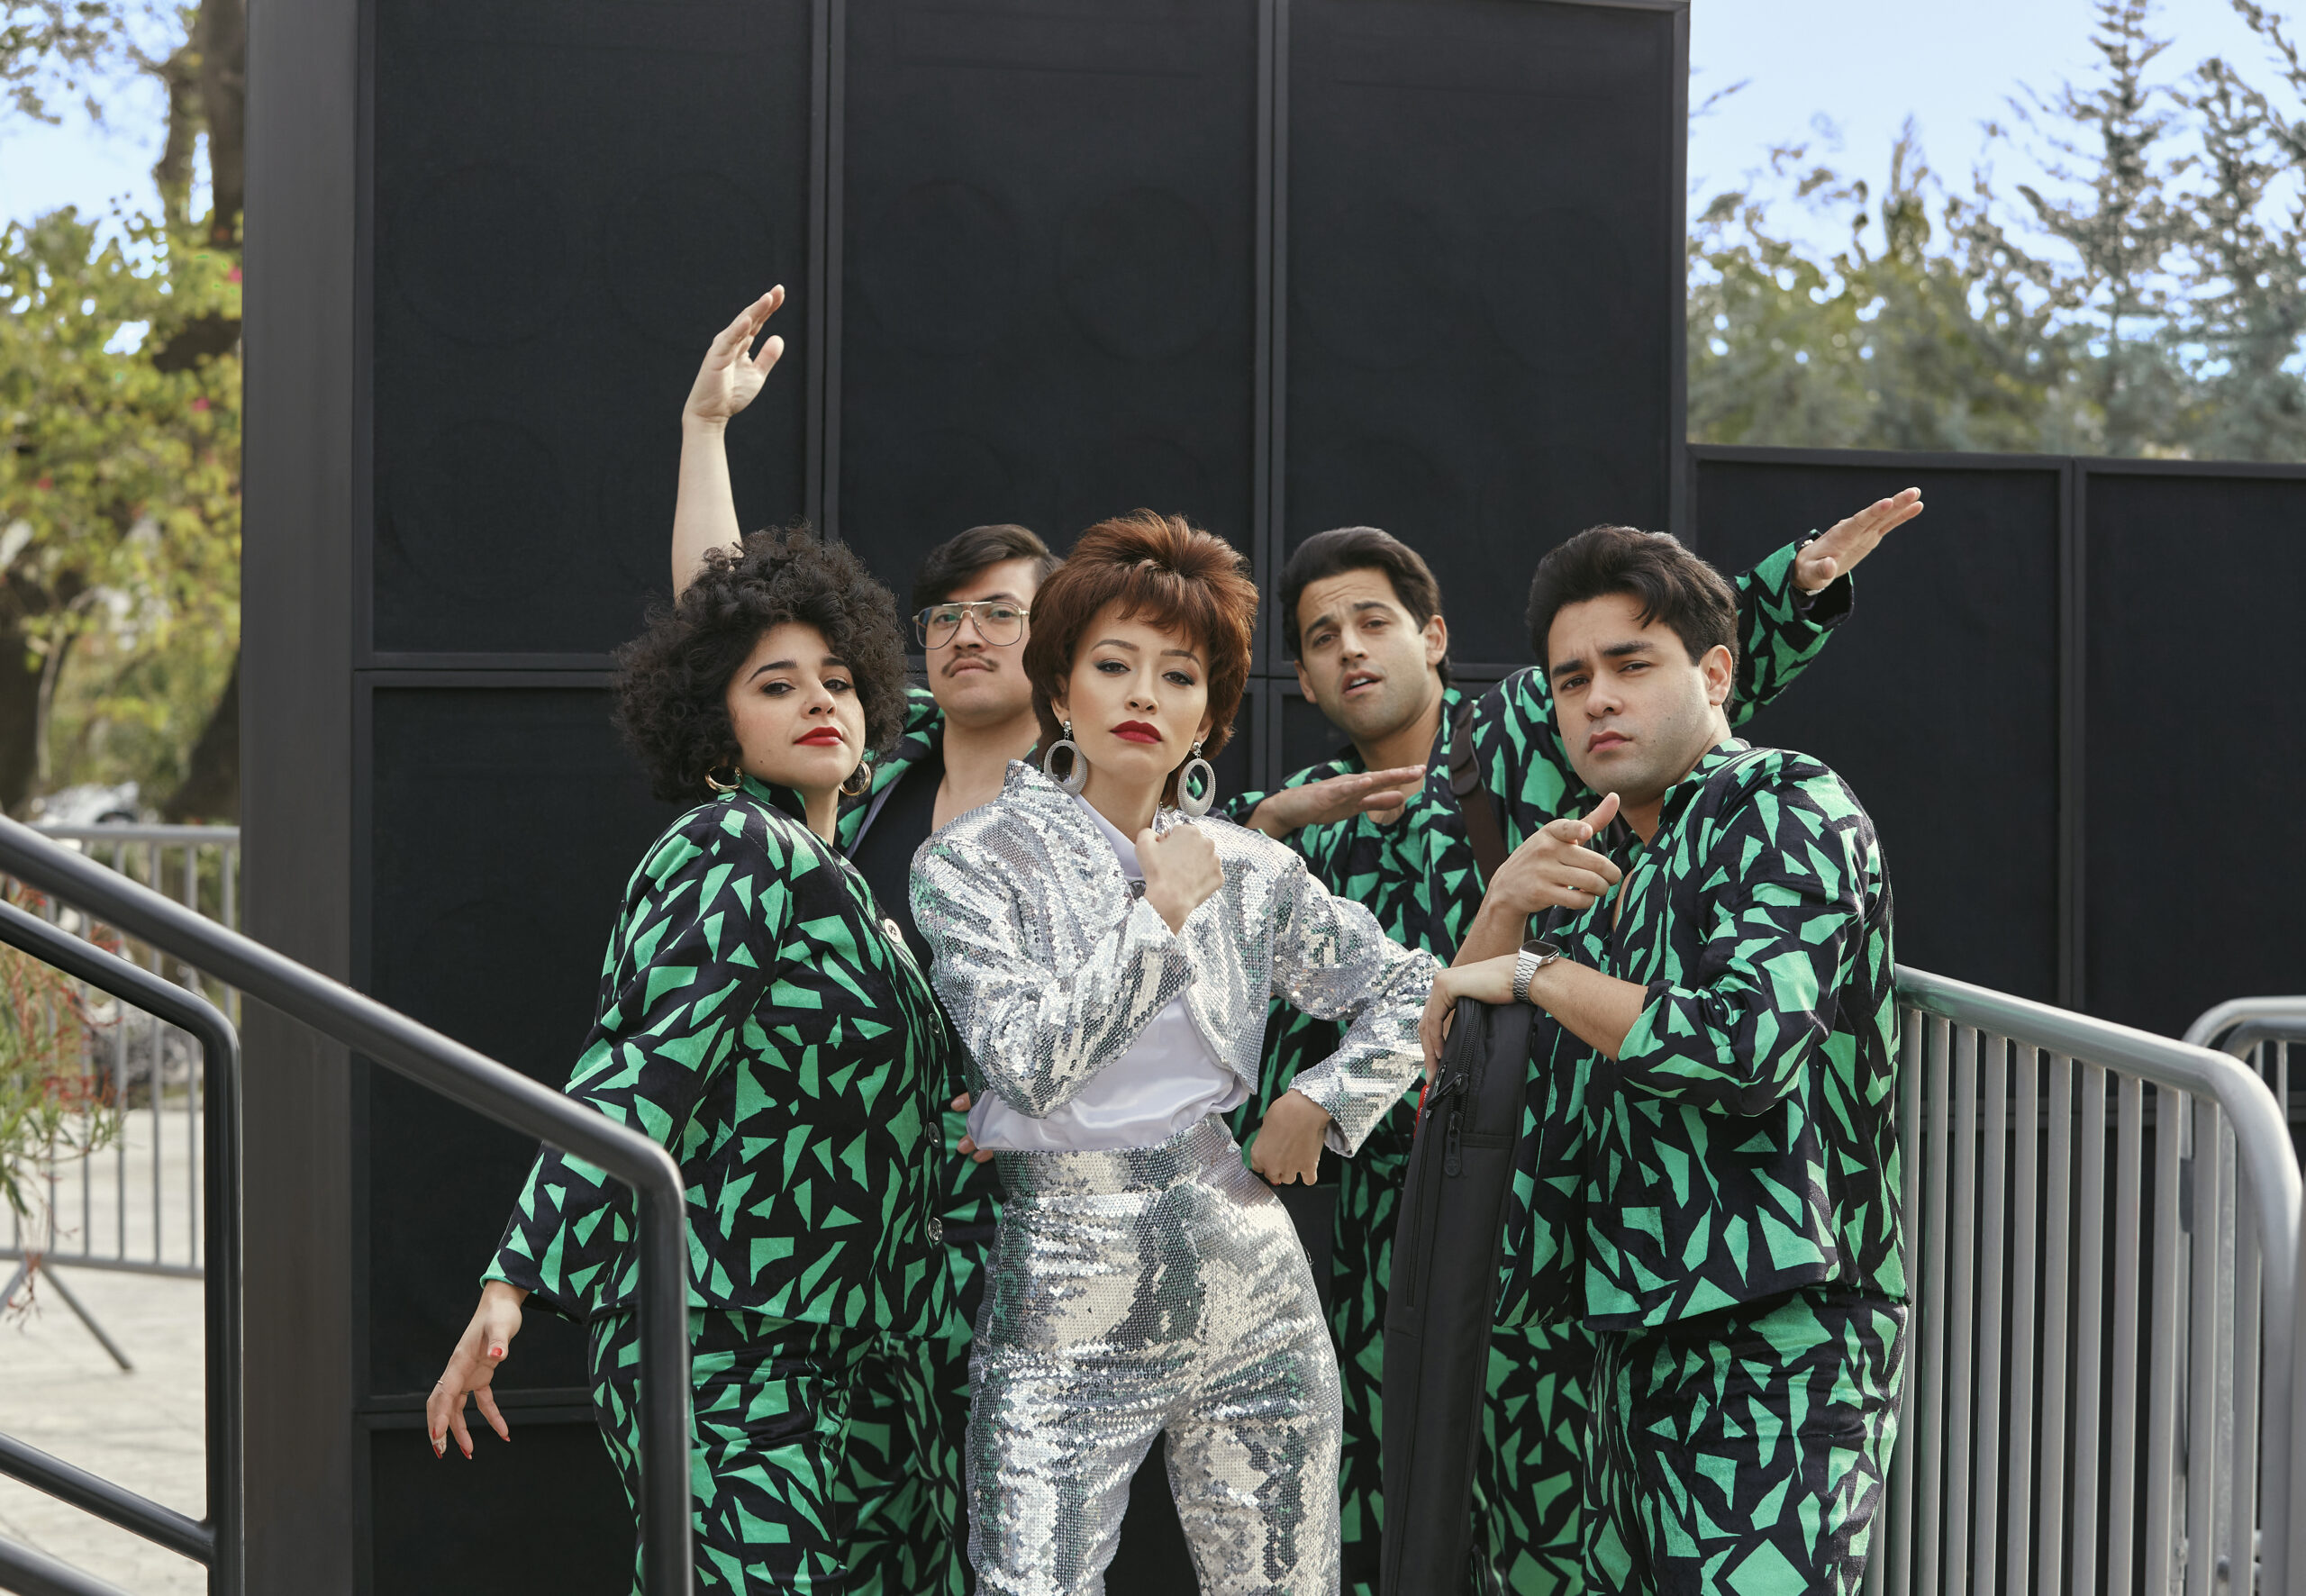 Selena The Series (L to R) Noemi Gonzalez as Suzette Quintanilla and Hunter Reese Pena as Ricky Vela and Christian Serratos as Selena Quintanilla and Paul Rodriguez, Jr. as Roger Garcia and Gabriel Chavarria as A.B. Quintanilla in episode 103.